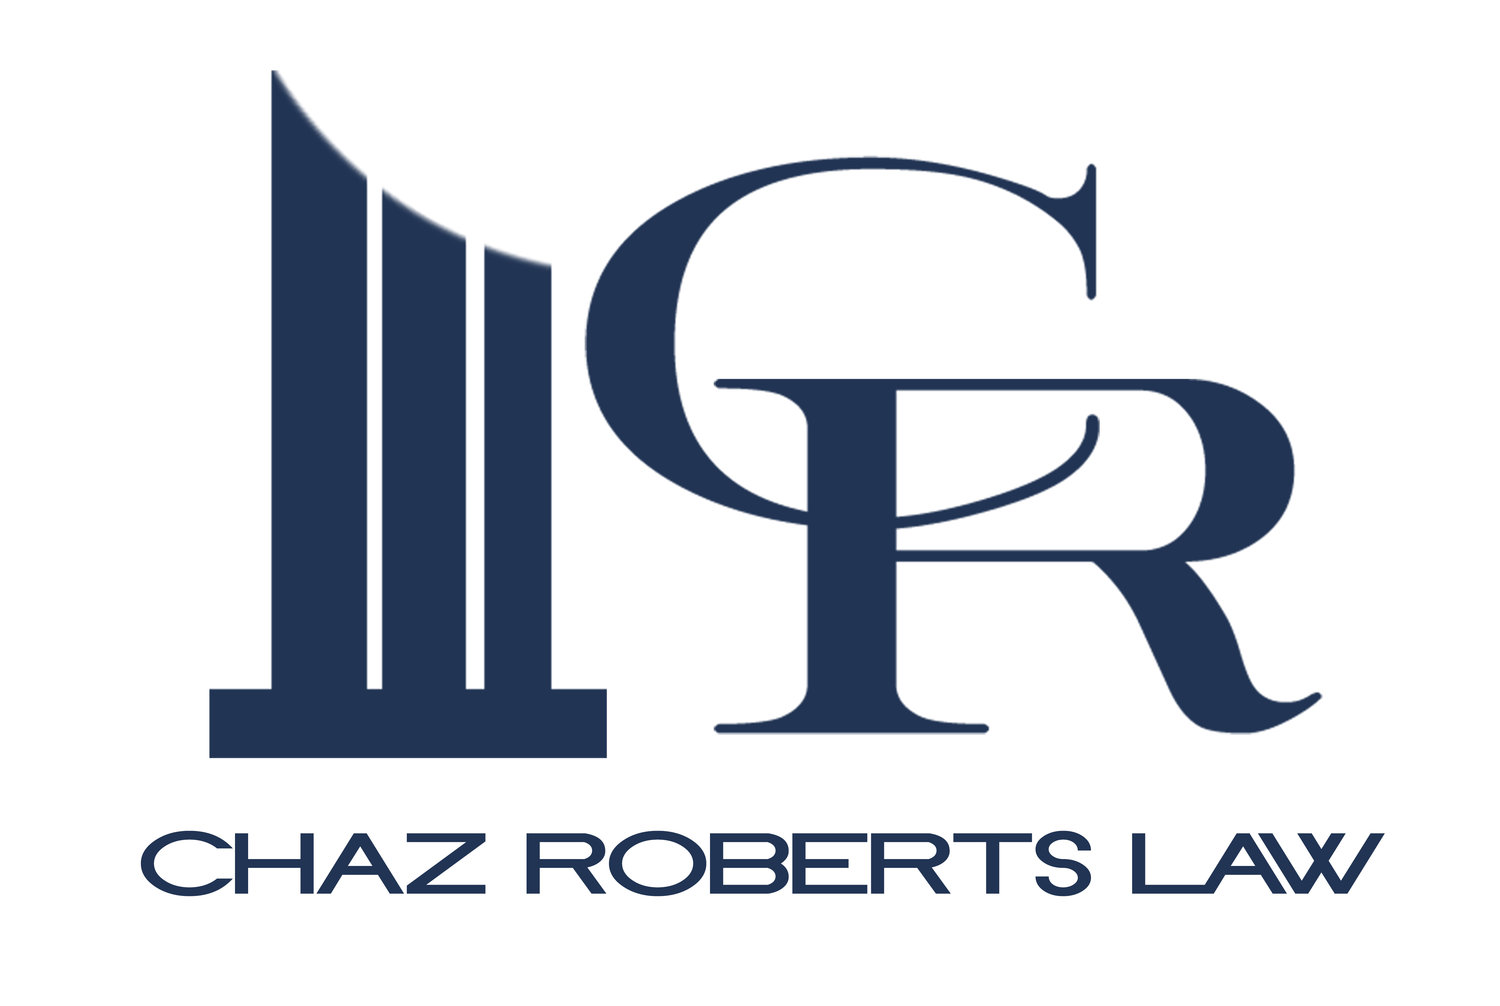 Chaz Roberts Law: Lafayette, LA Criminal Defense, Personal Injury Lawyer